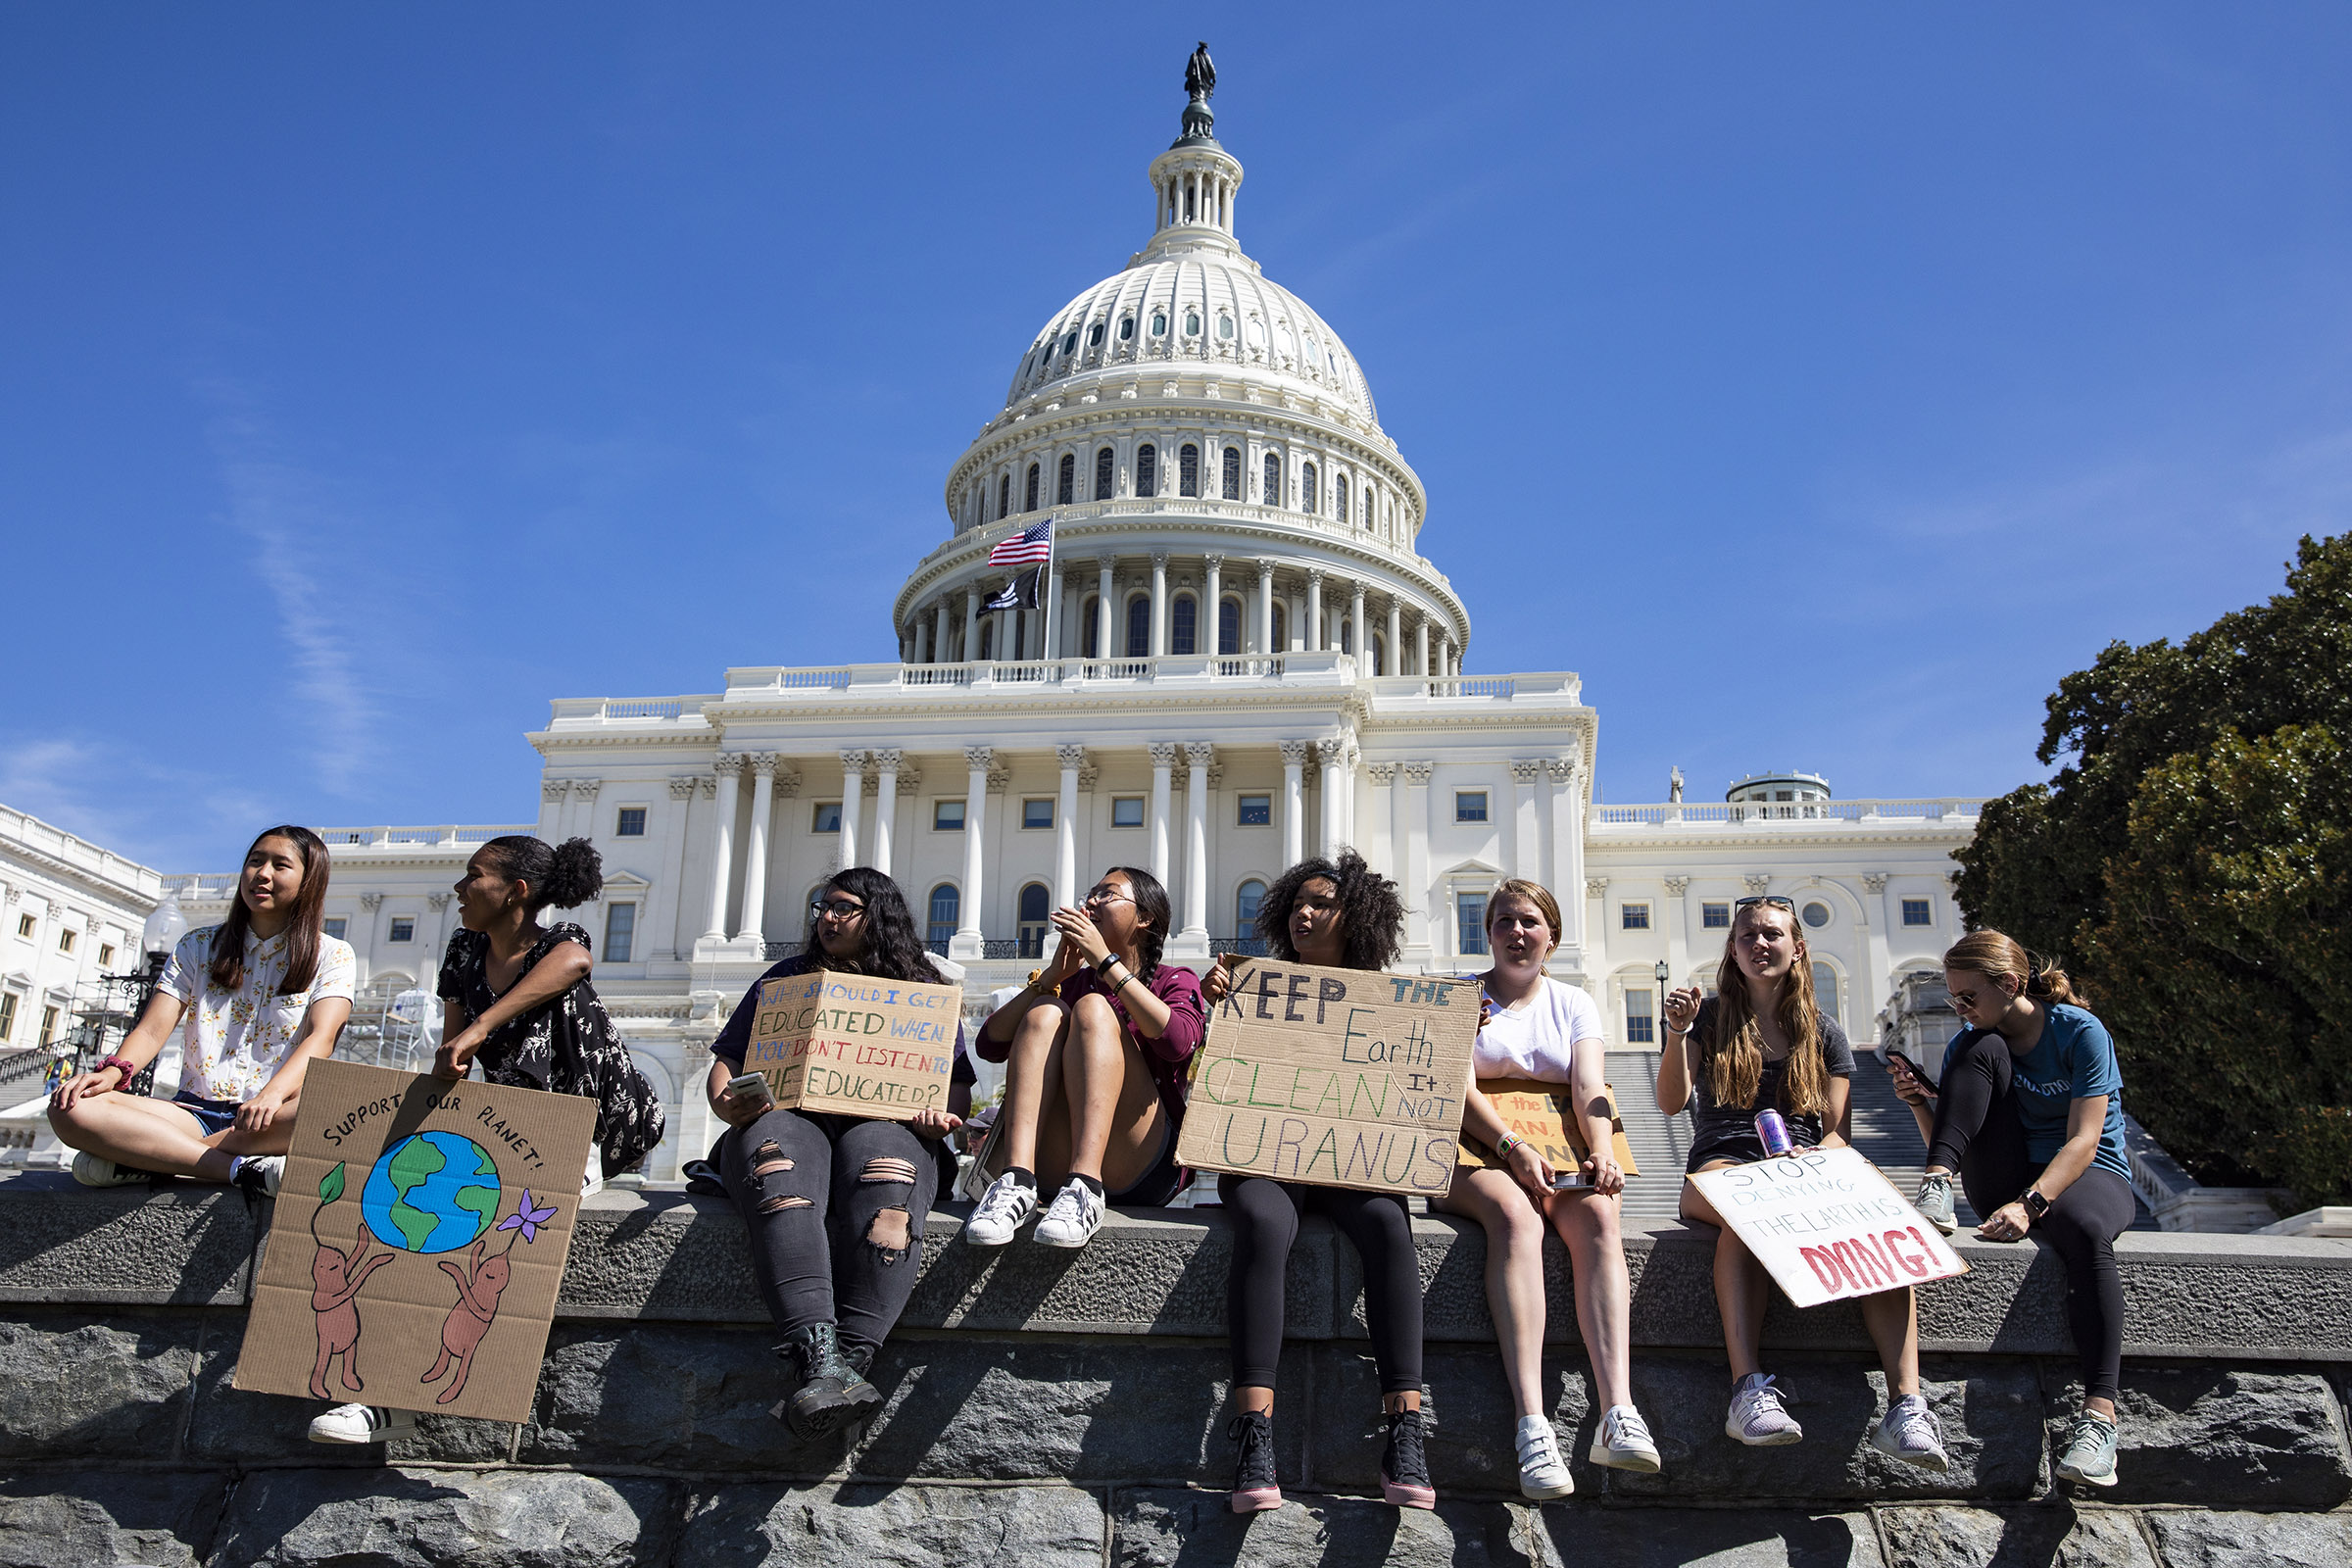 Teens sit along a wall at the U.S. Capitol during the Global Climate Strike rally on September 20, 2019 in Washington, DC.